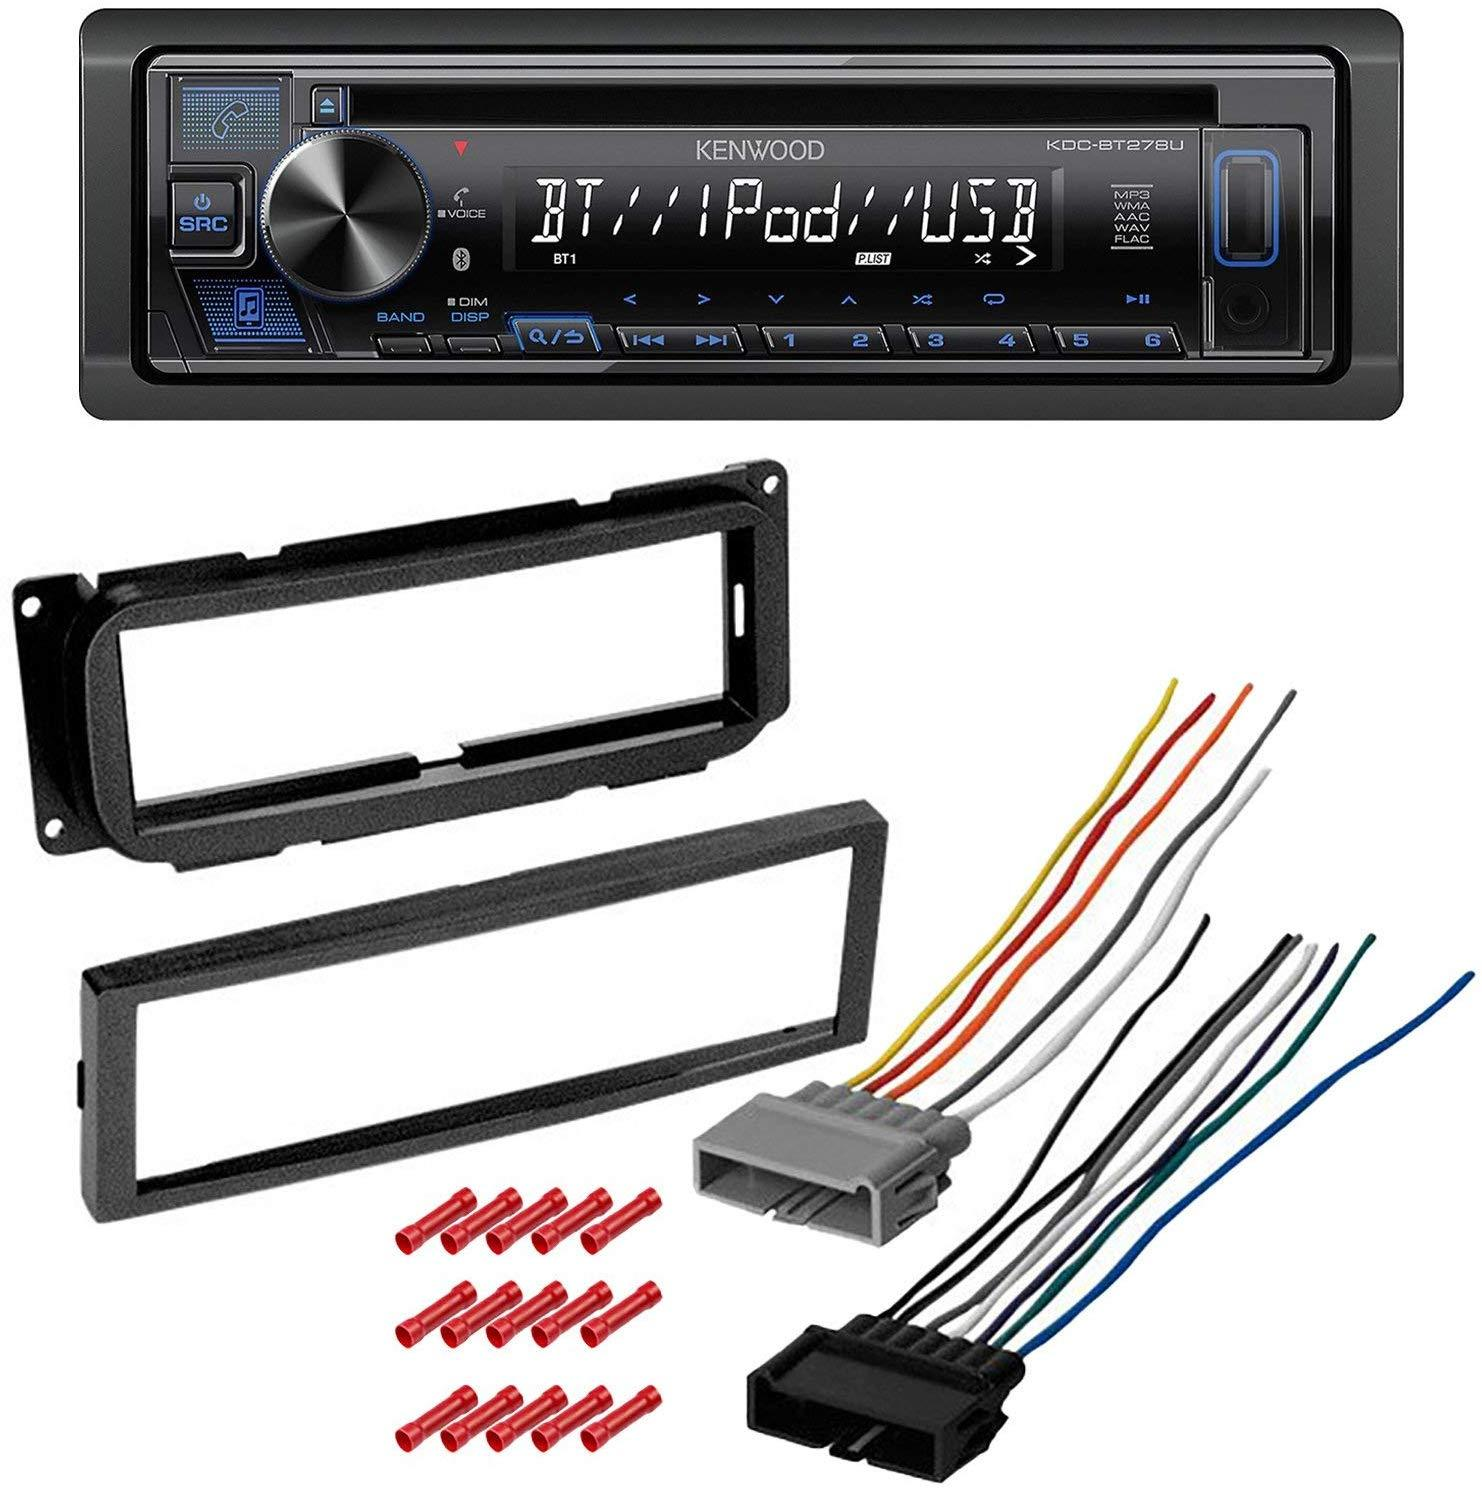 Kit8078 Kenwood Car Stereo With Bluetooth For 2000